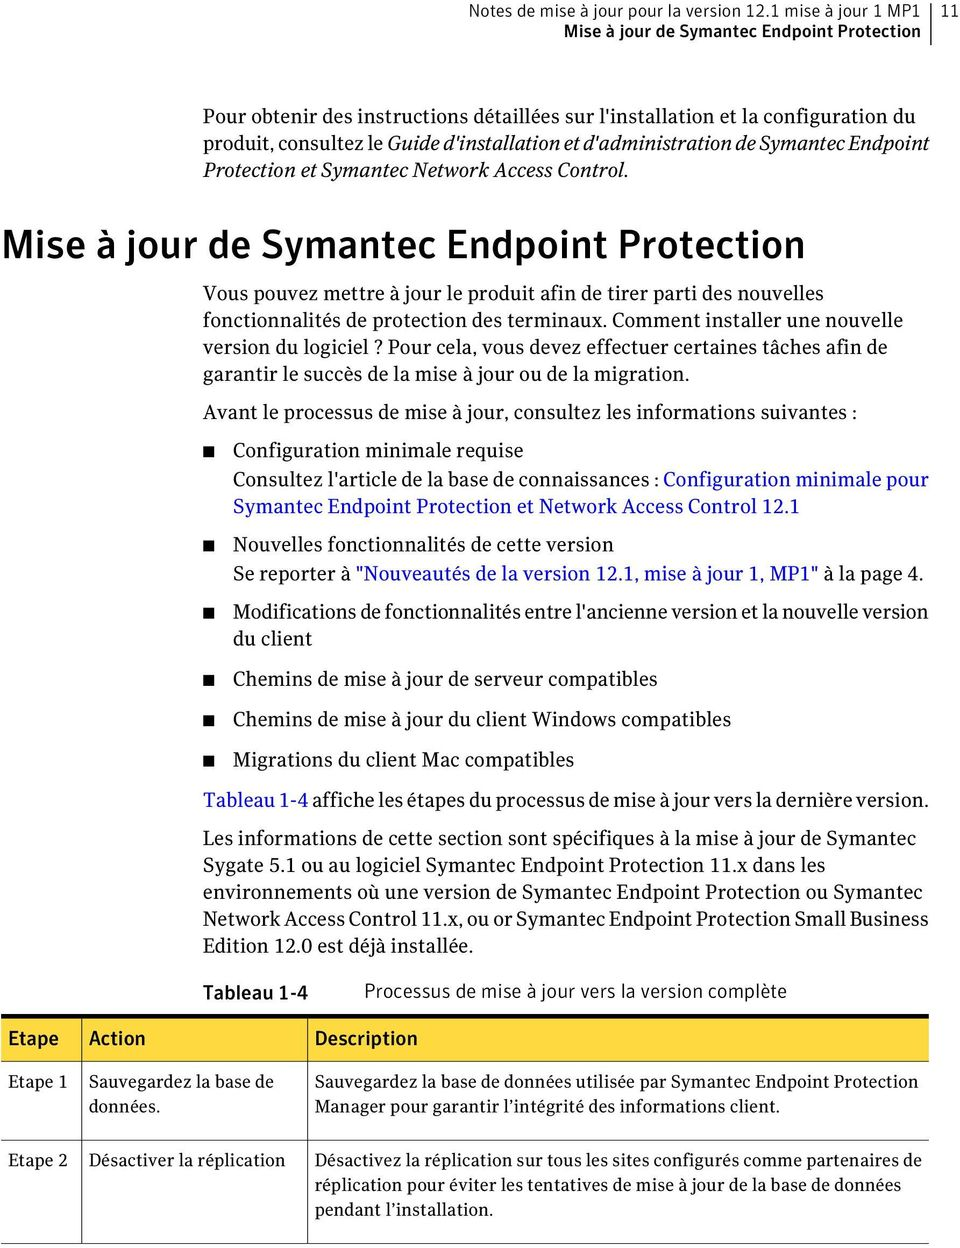 mise a jour symantec endpoint protection 12.1